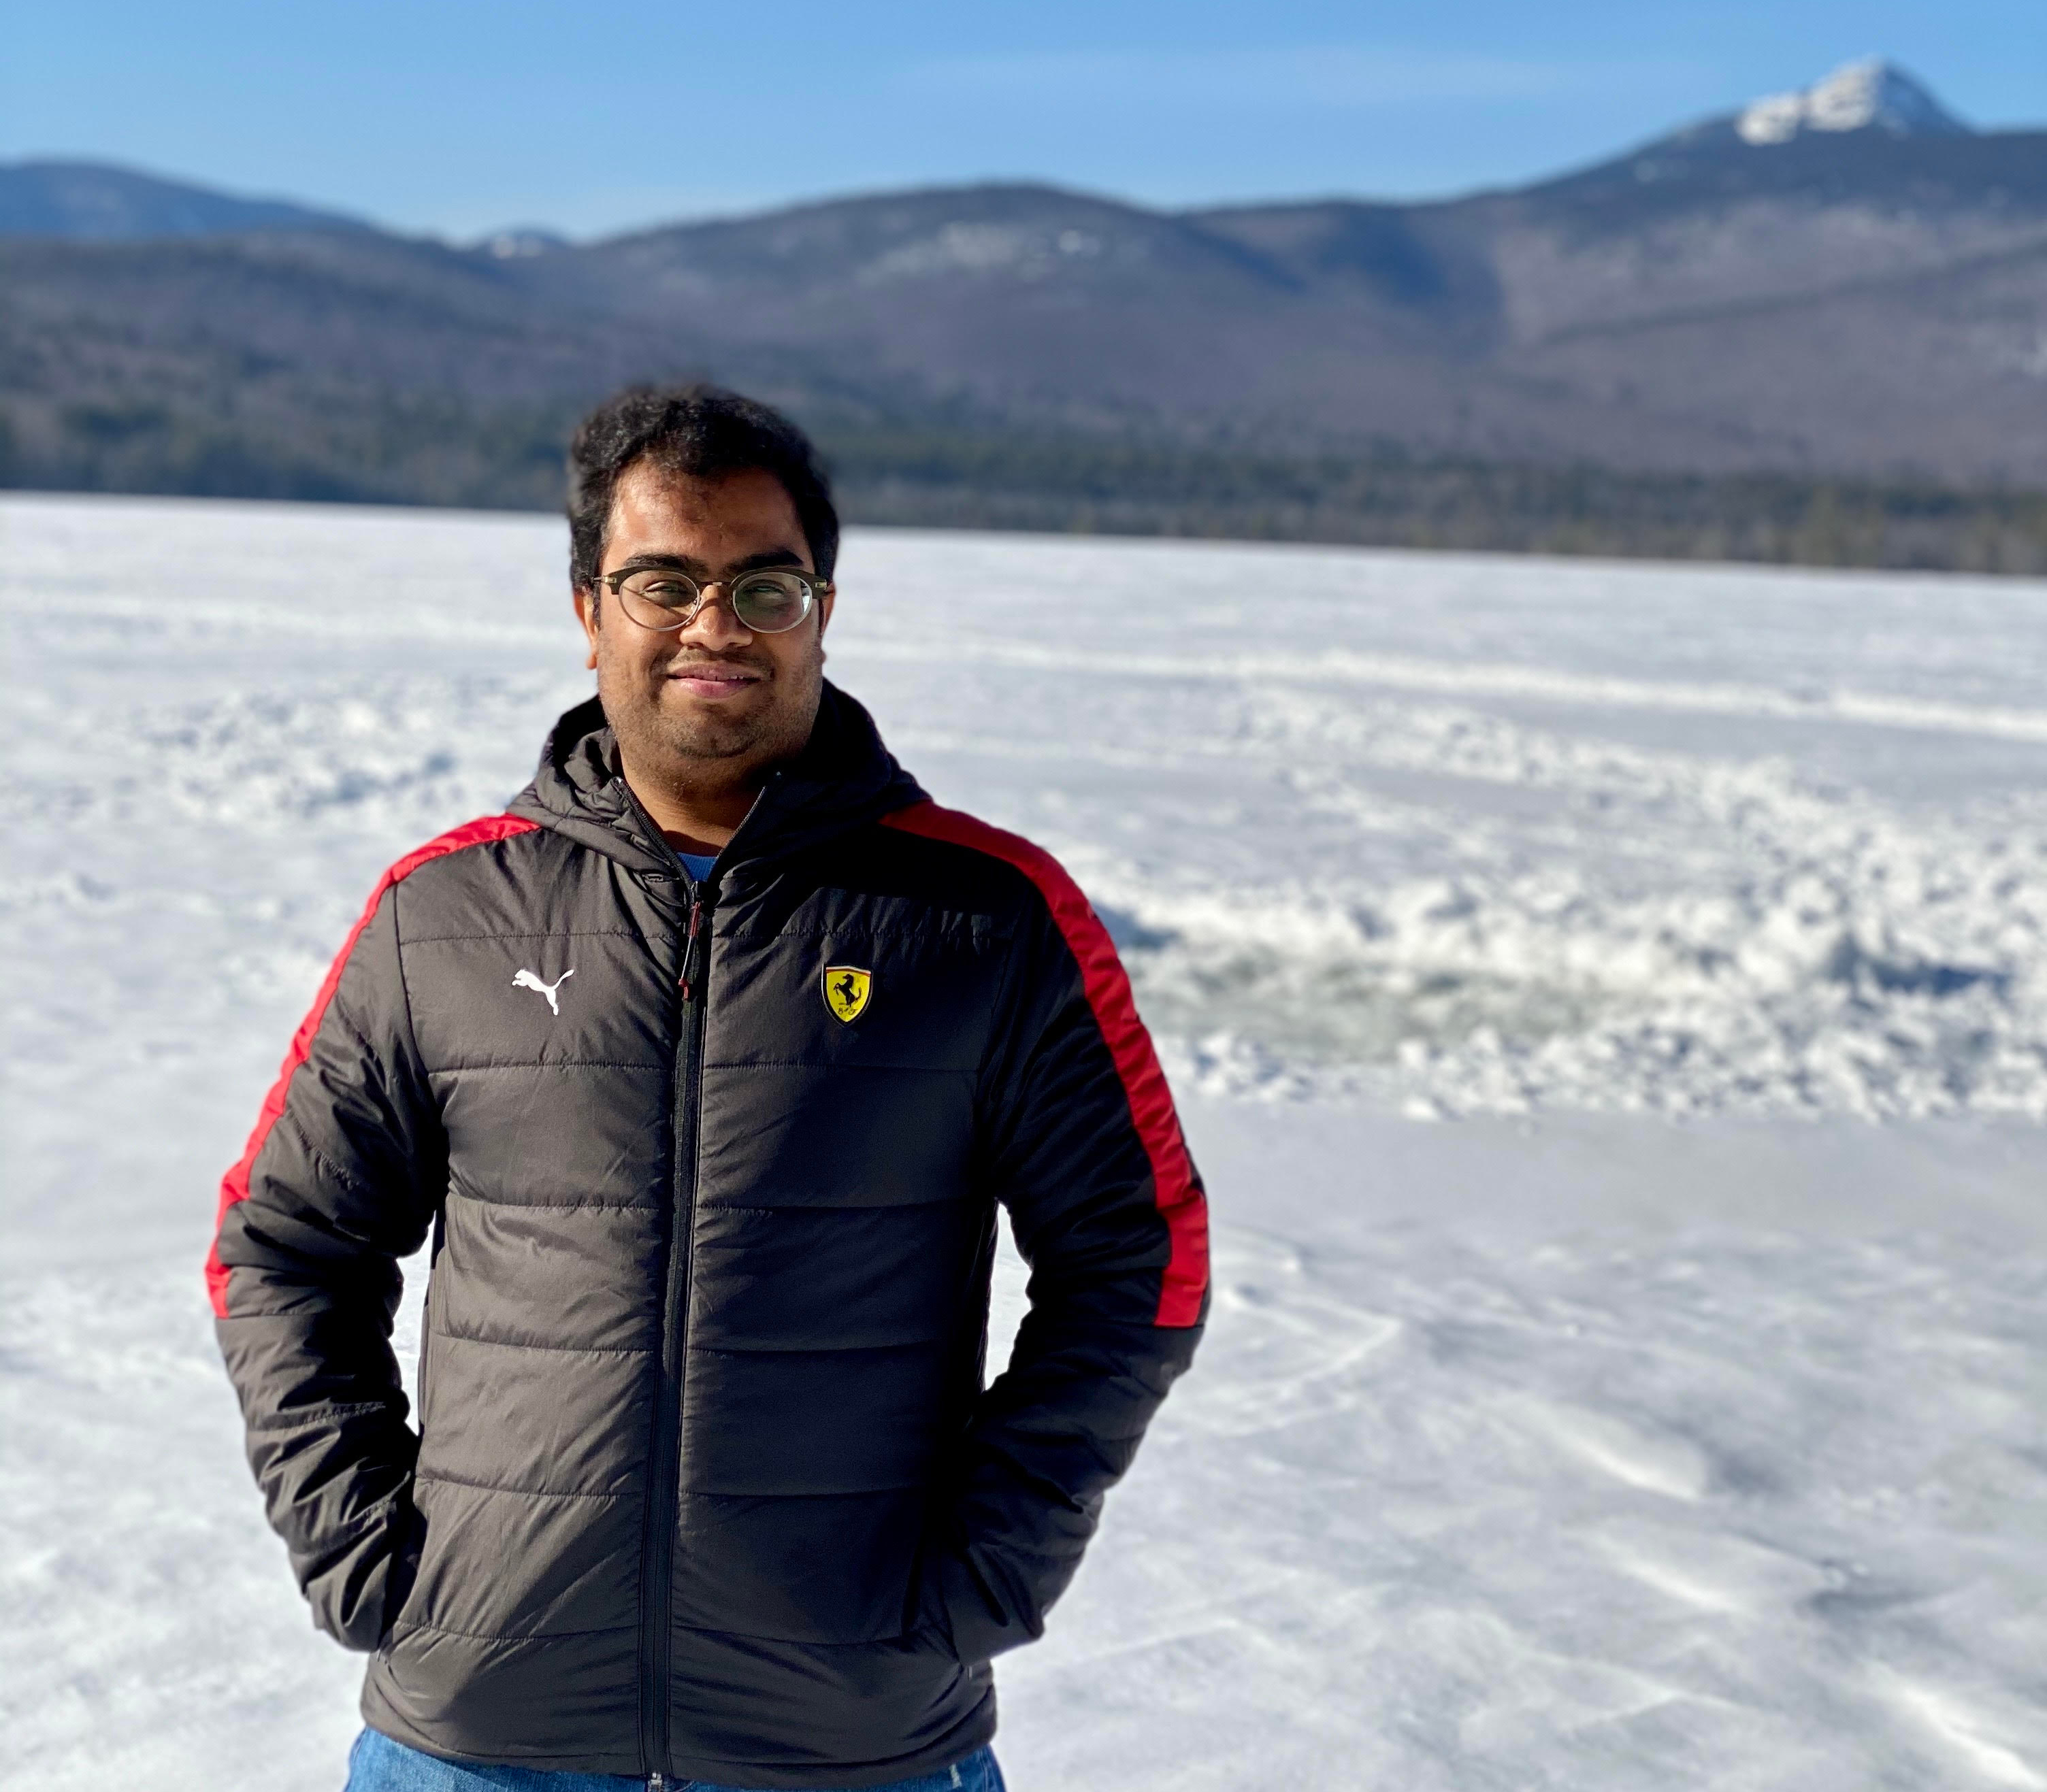 Shiv Sidharth recently graduated with an LL.M. in International Law from The Fletcher School, Tufts University.